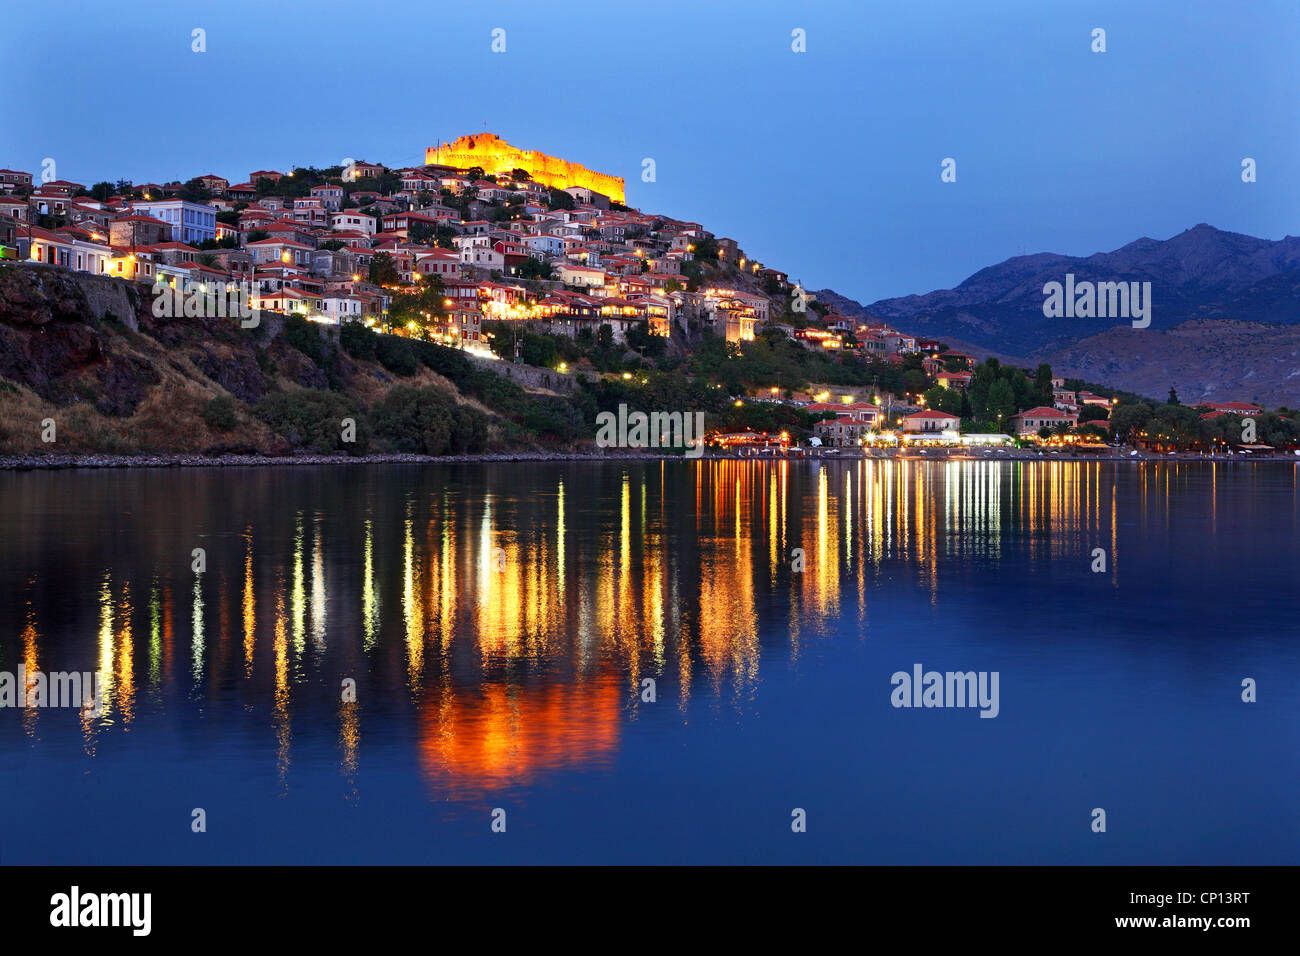 Molyvos town in Lesvos island, in the 'blue' hour. Northern Aegean, Greece - Stock Image